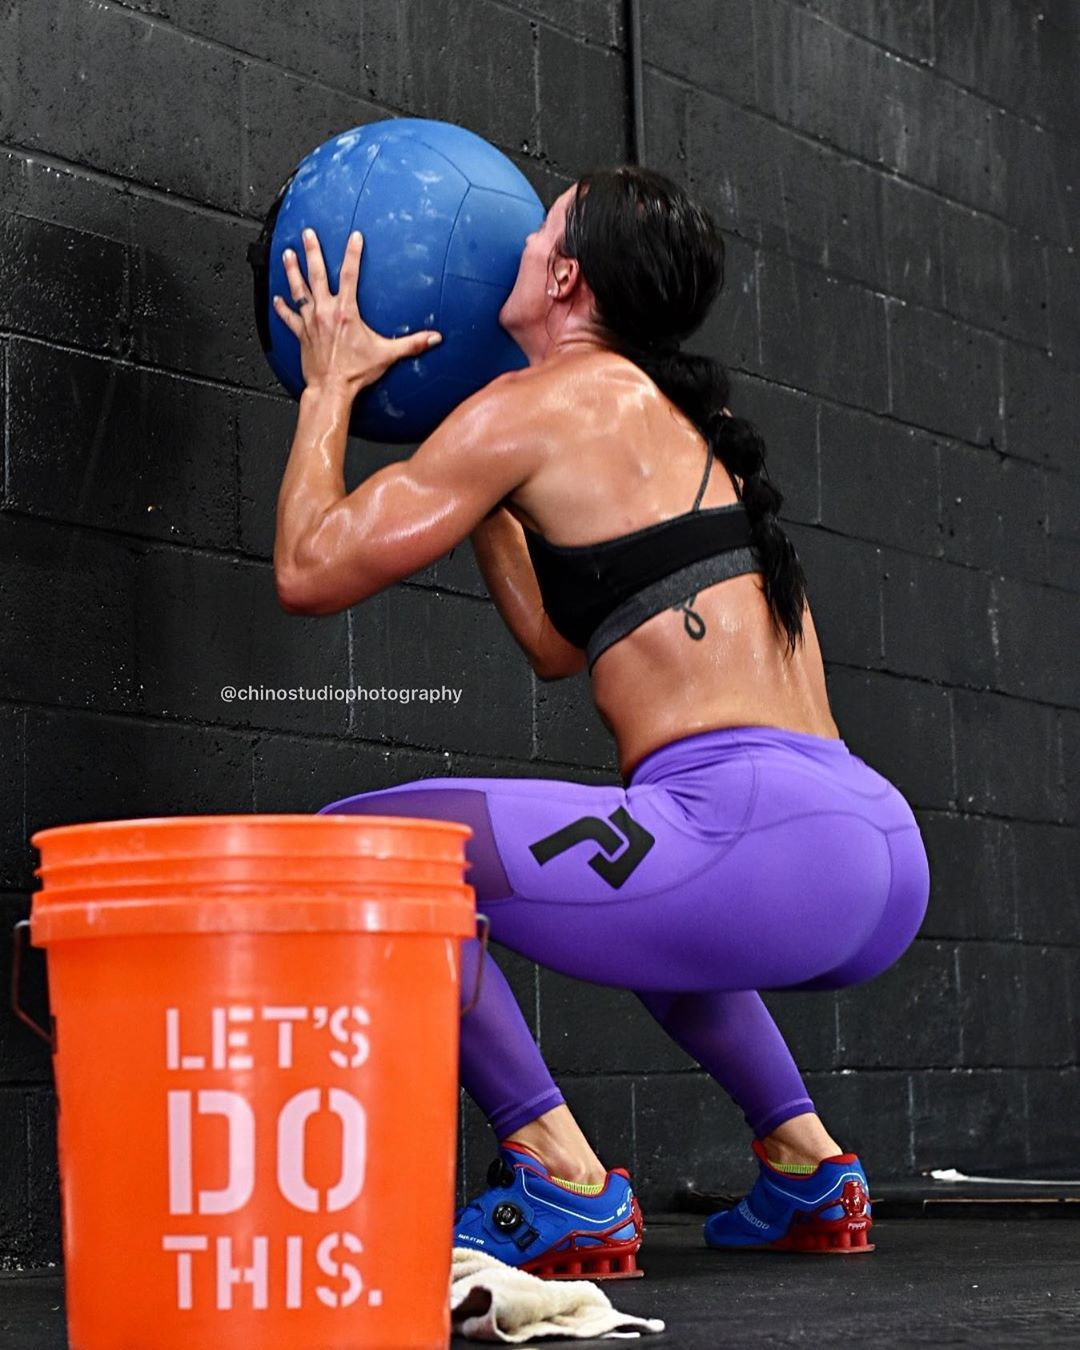 Dr Fir Blog Everything You Are Looking For Workout Burpee Box Jumps Fitness Motivation